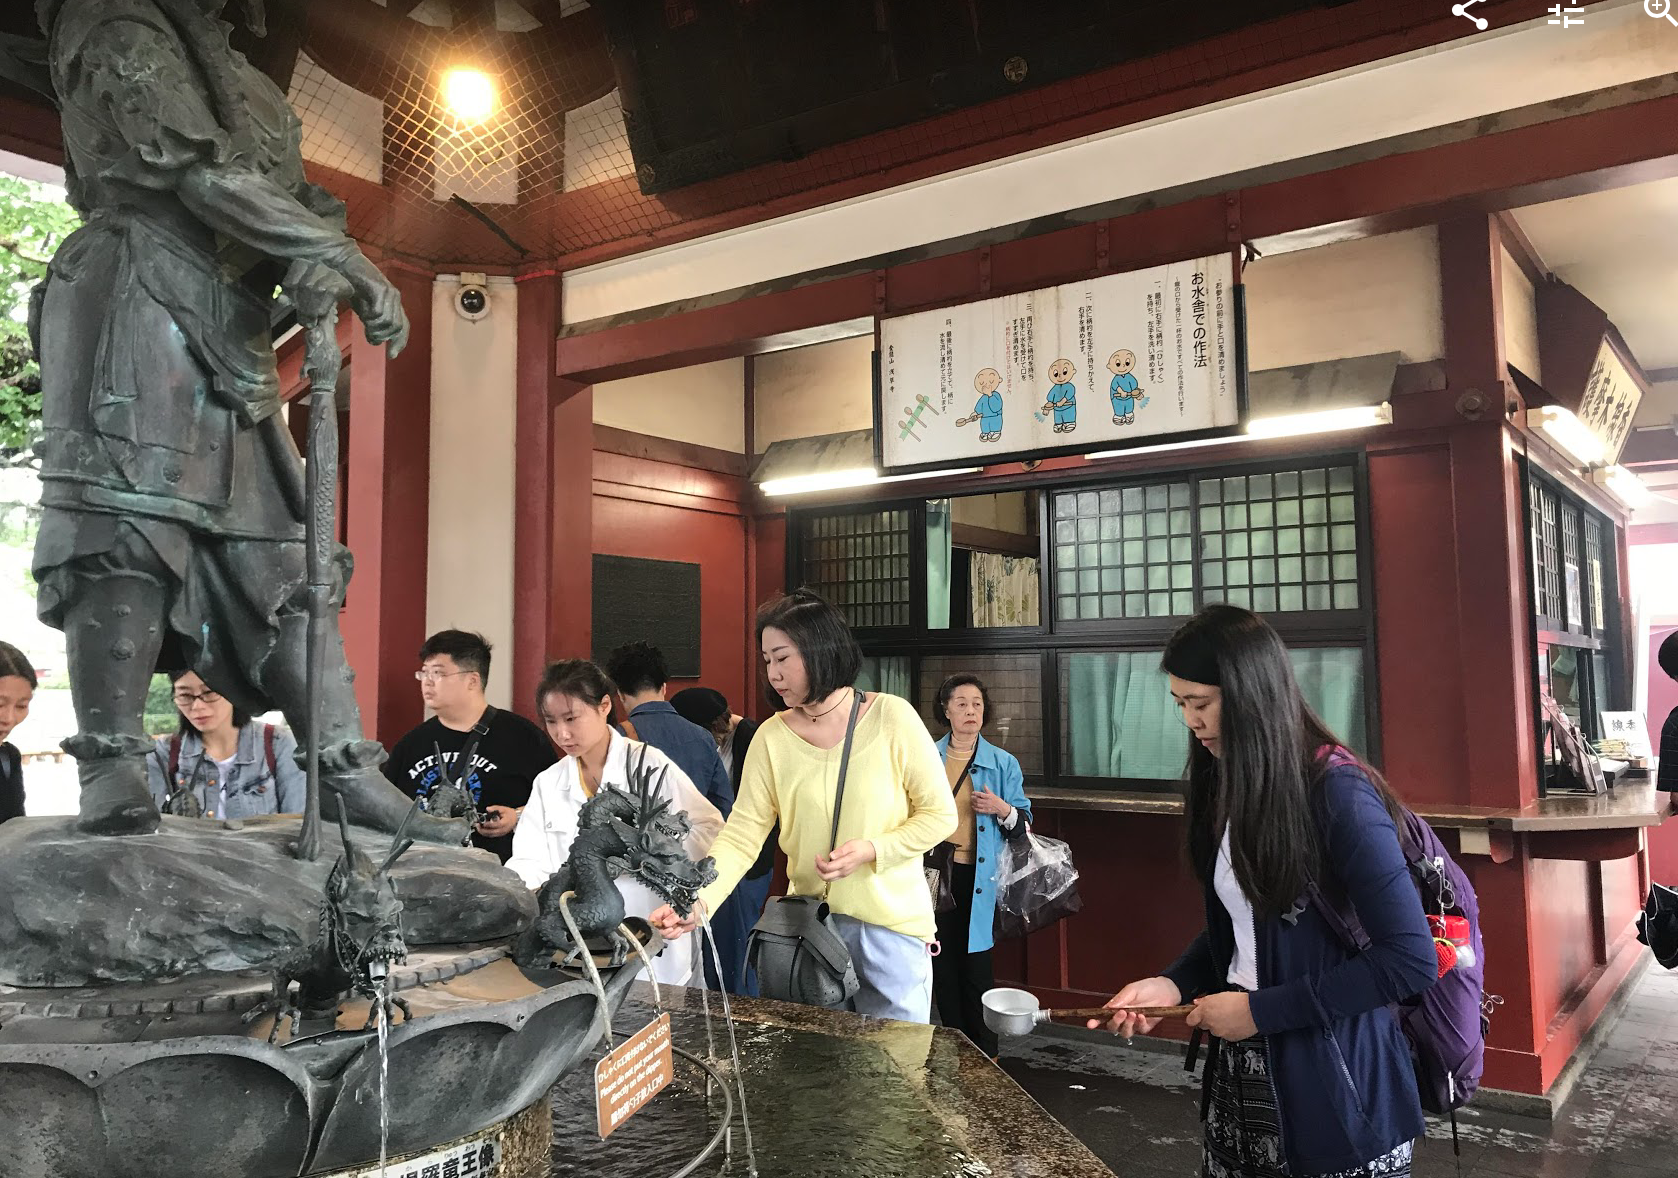 In Japan, I visited Asakusa which is known for the Sensoji, a popular Buddhist temple, built in the 7th century. That's the place I mainly stayed around, and this is a picture taken there. The idea is to wash your hands and face with the water to bring you luck!